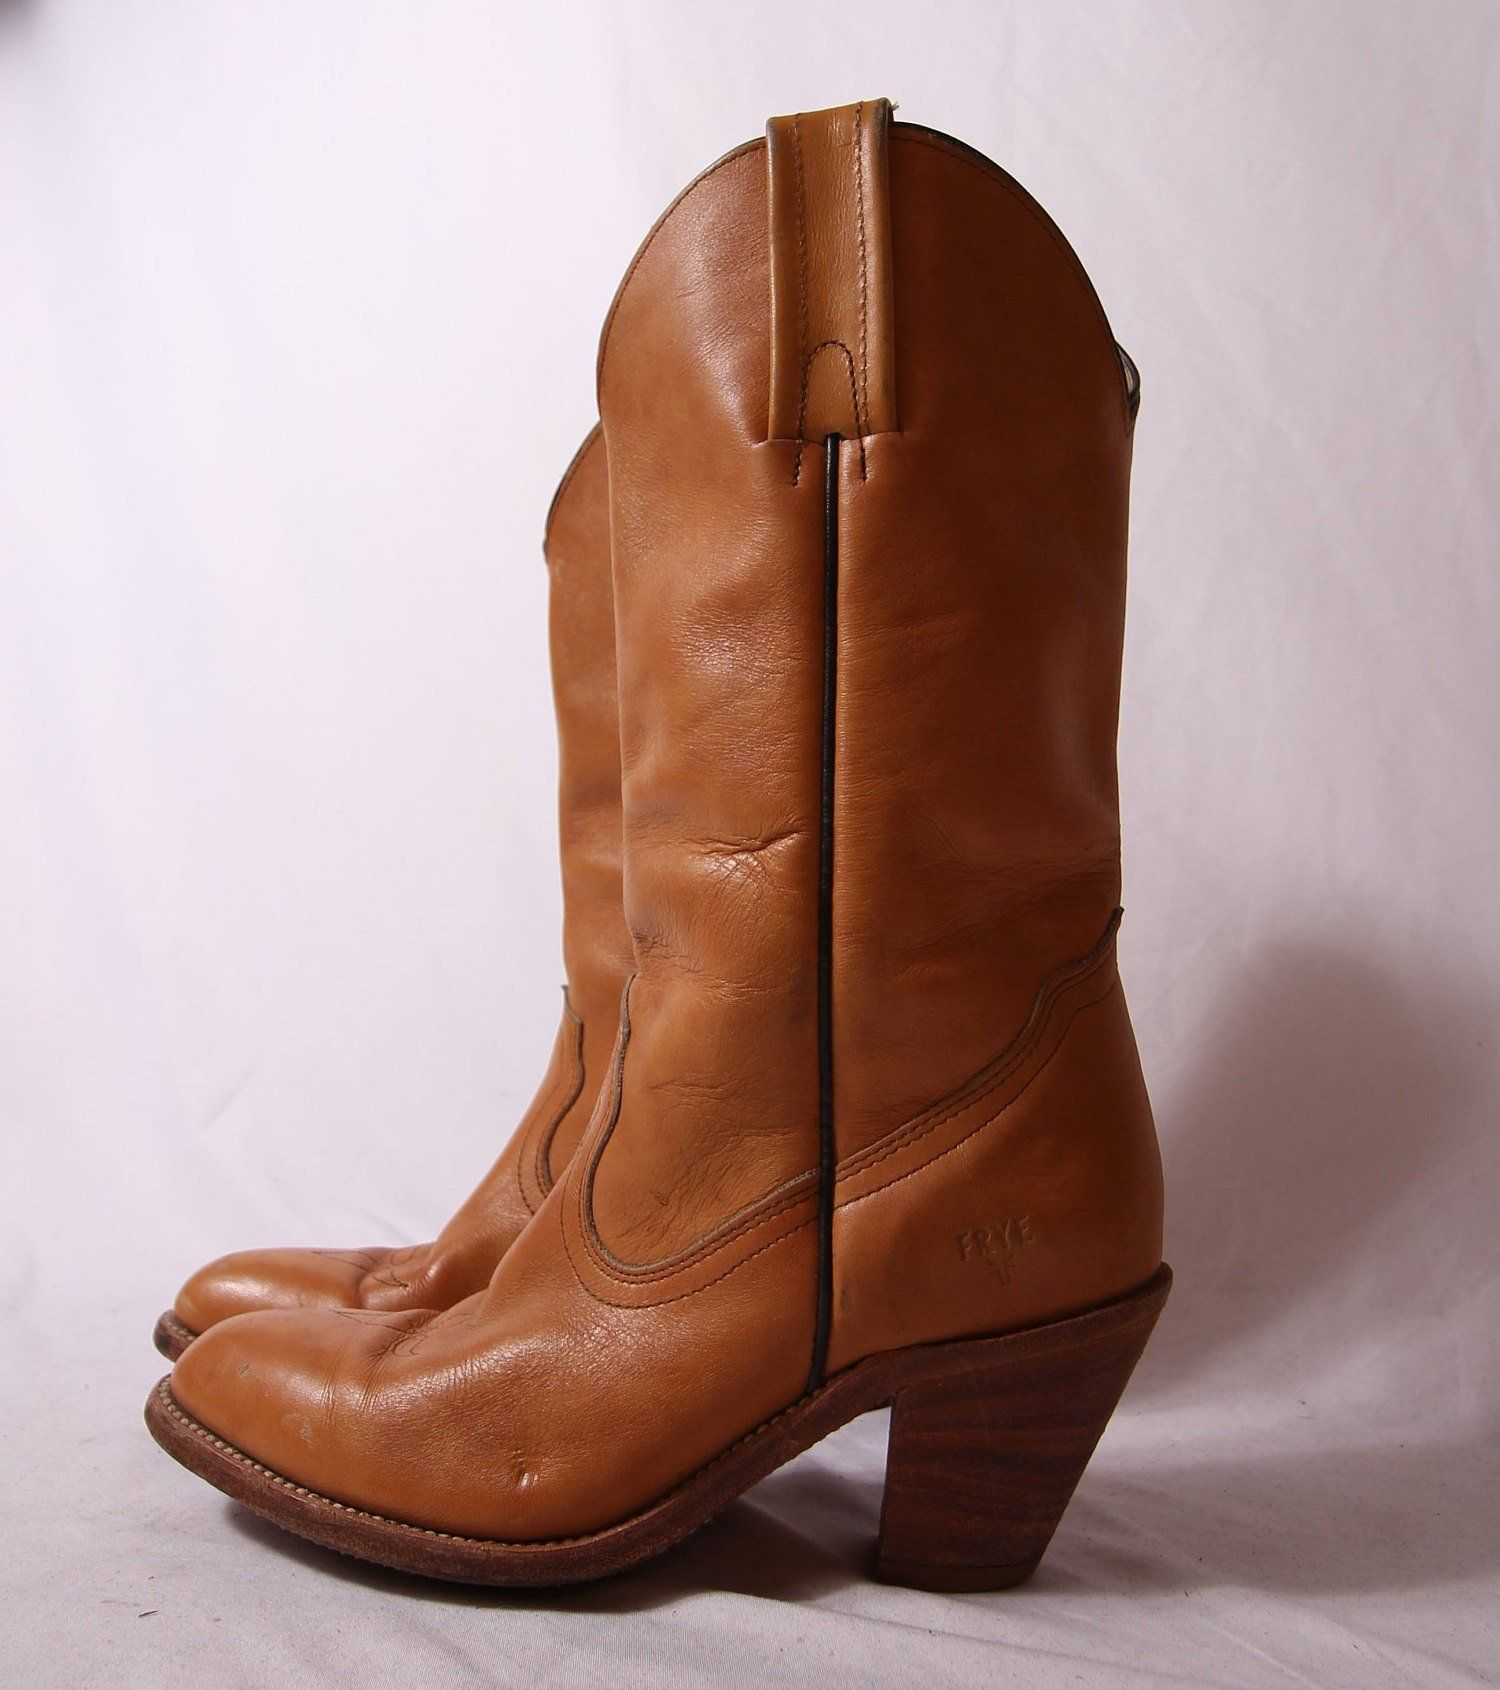 f679f6a7fba Vintage 'FRYE' Tan Leather Cowboy Boot | Western | Country | Boho ...